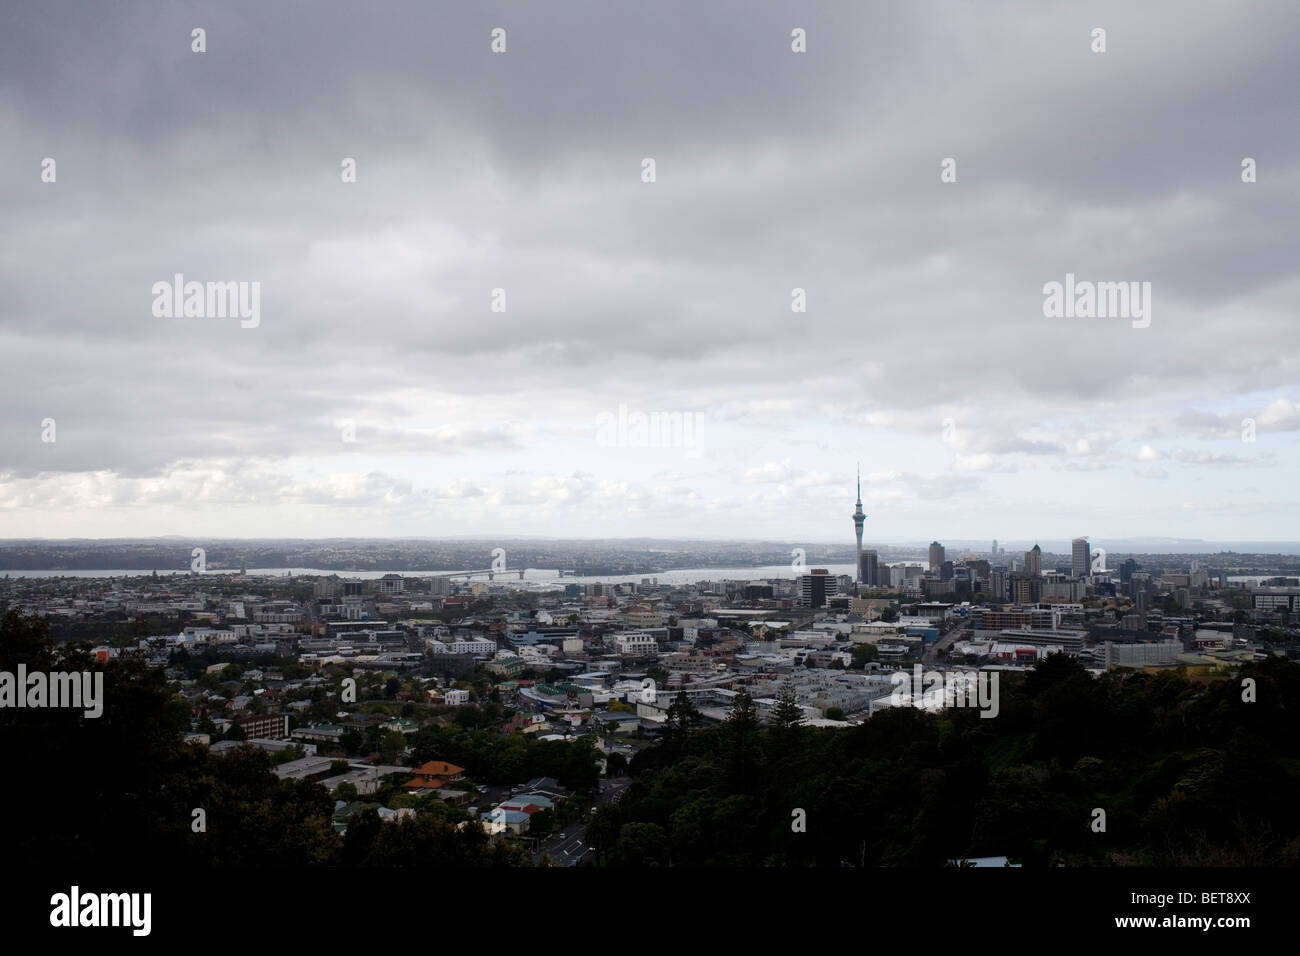 Auckland, New Zealand from Mt.Eden. - Stock Image